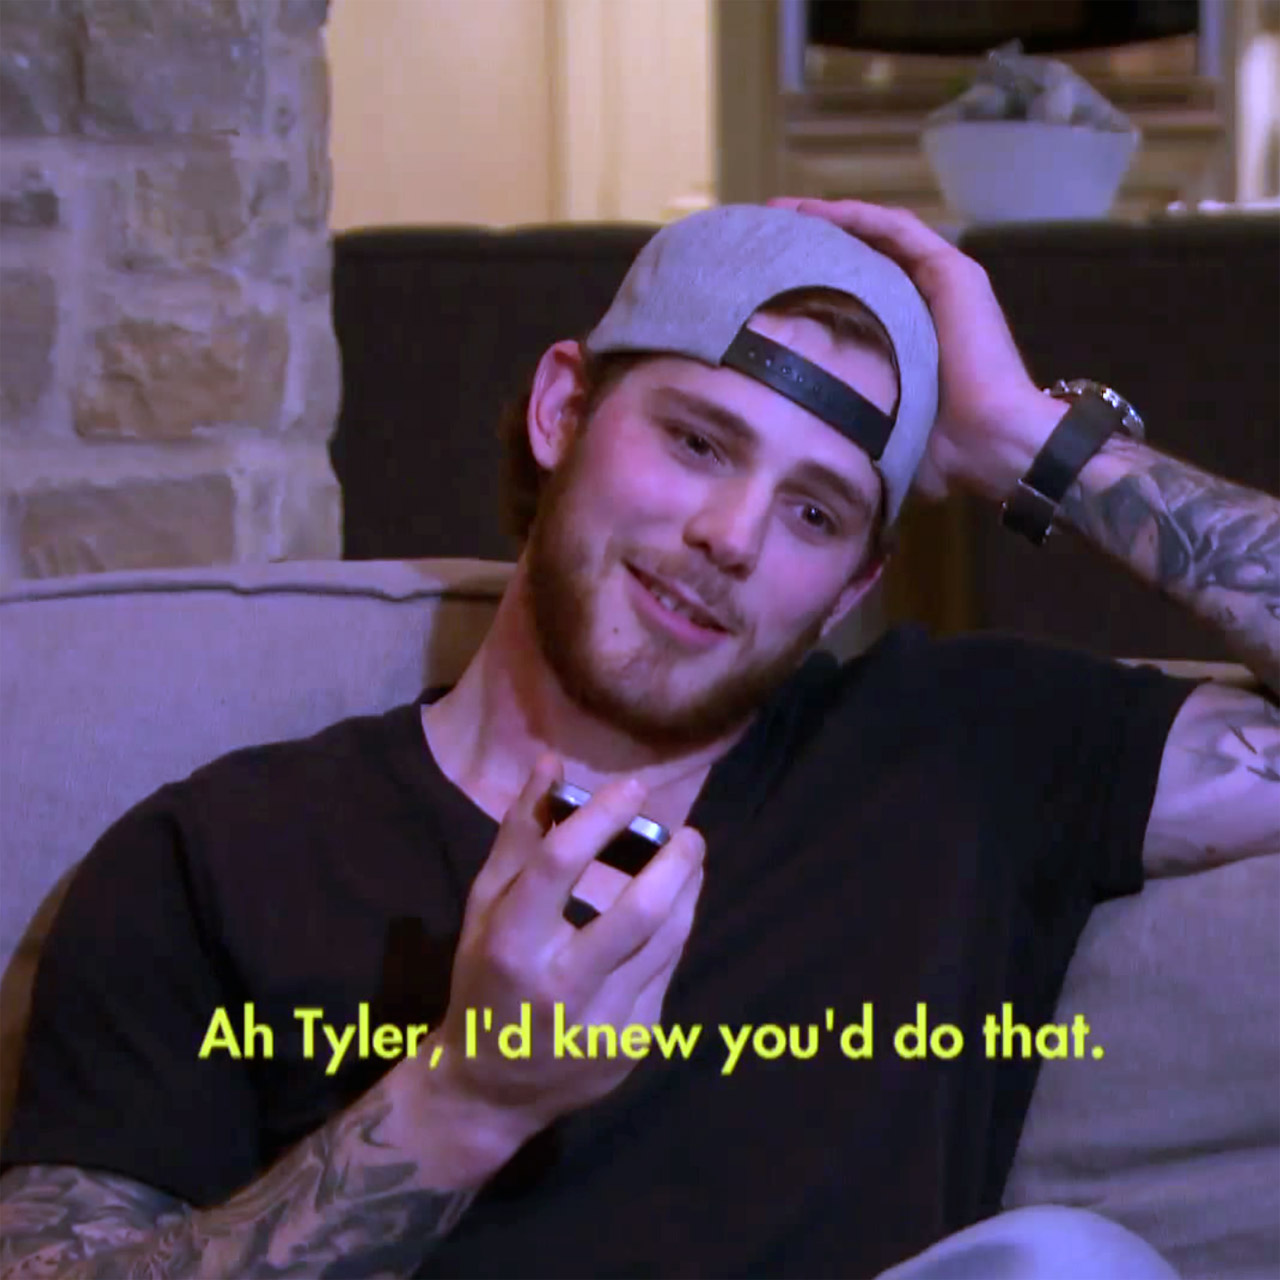 Tyler Seguin pulls a Valentine's Day prank on his mother